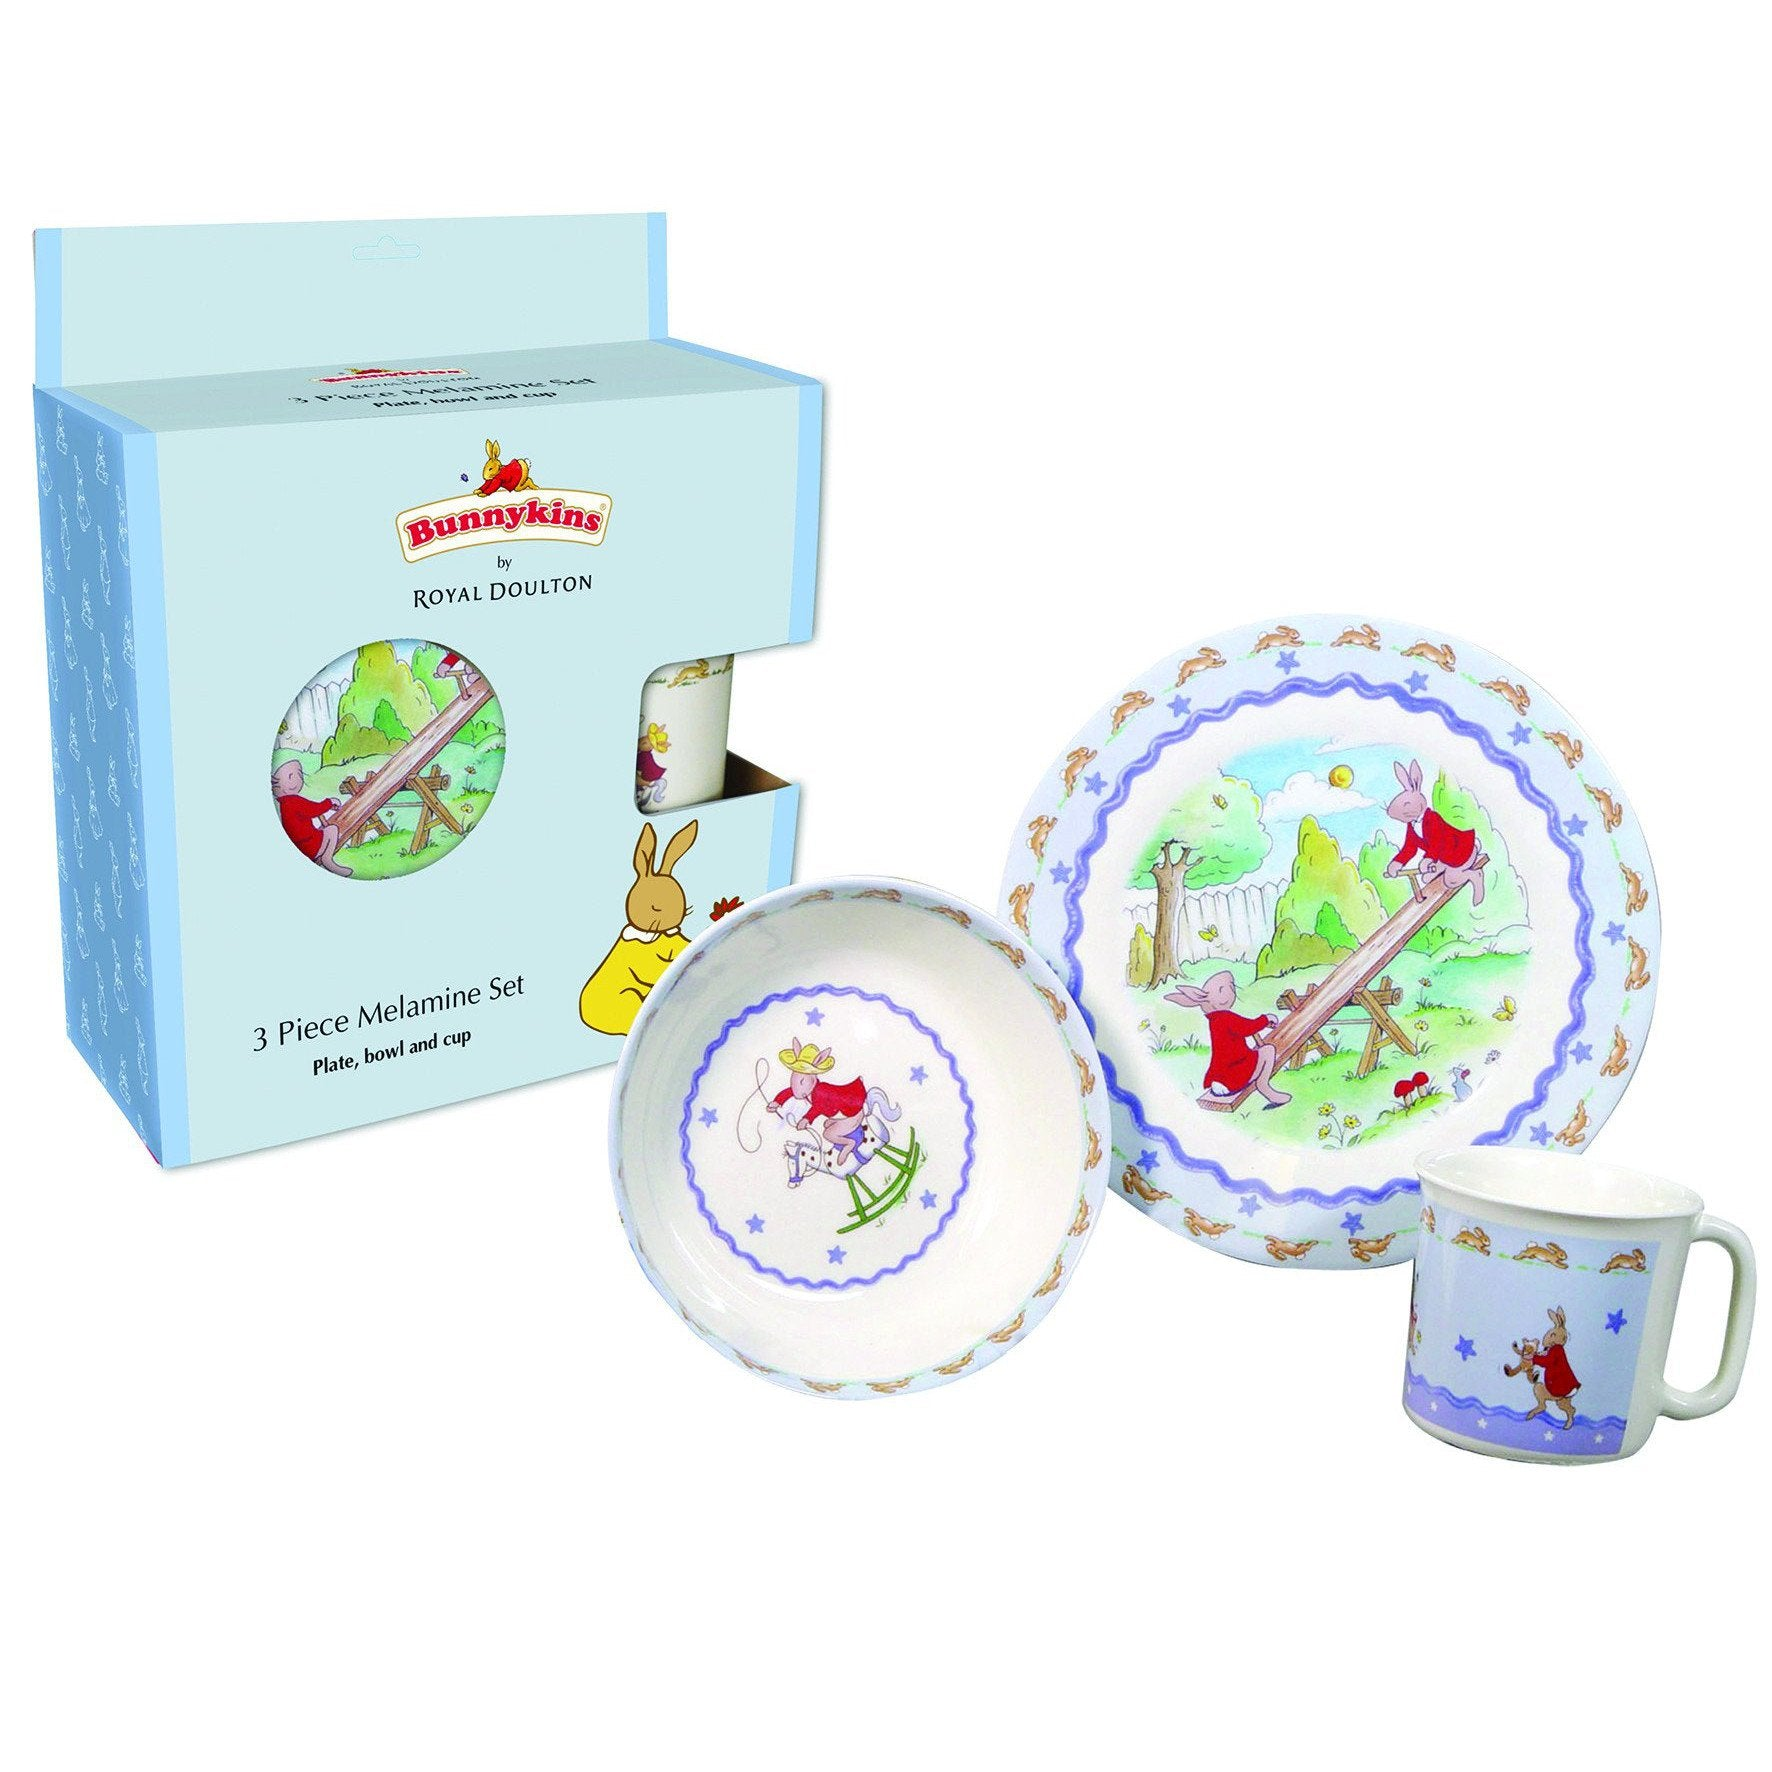 Bunnykins 3 Piece (Blue Box) Melamine Set-Yarrawonga Fun and Games.